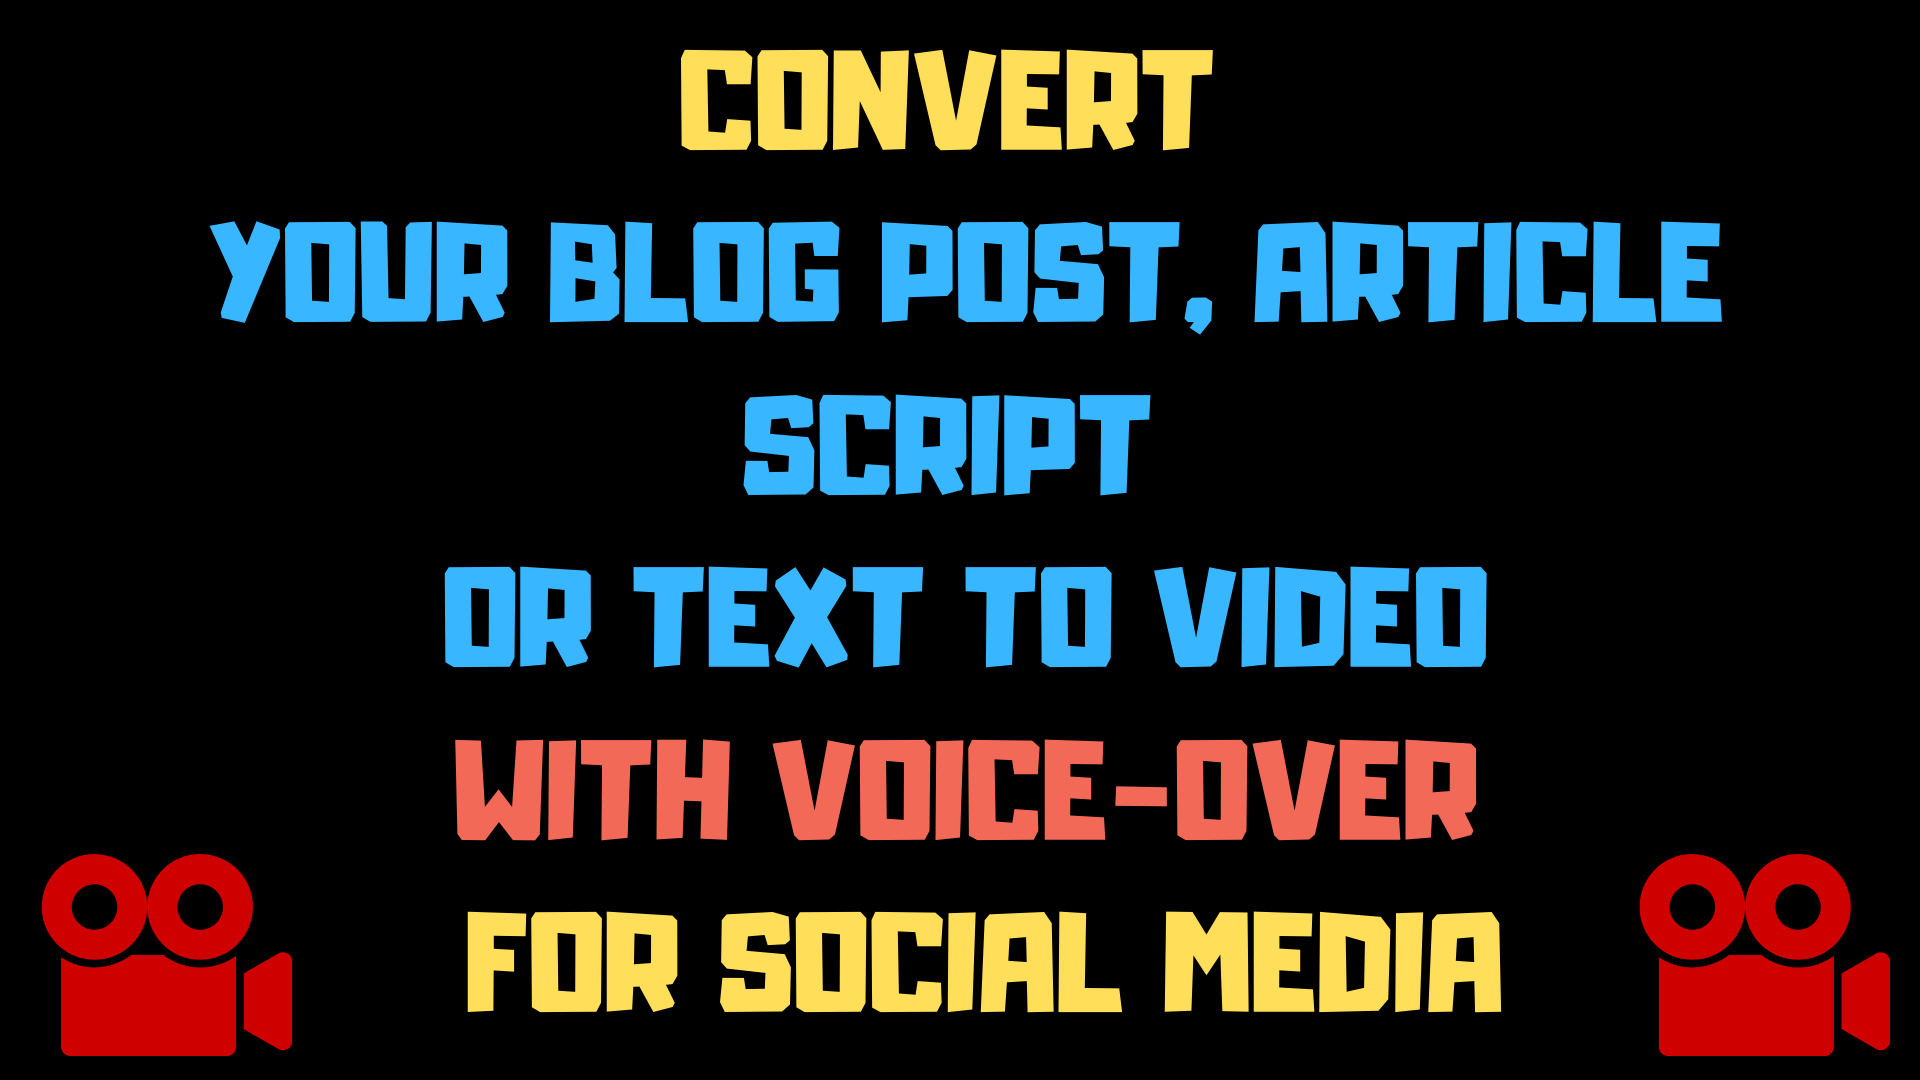 I will convert your article or blog post to video with voice-over for social media